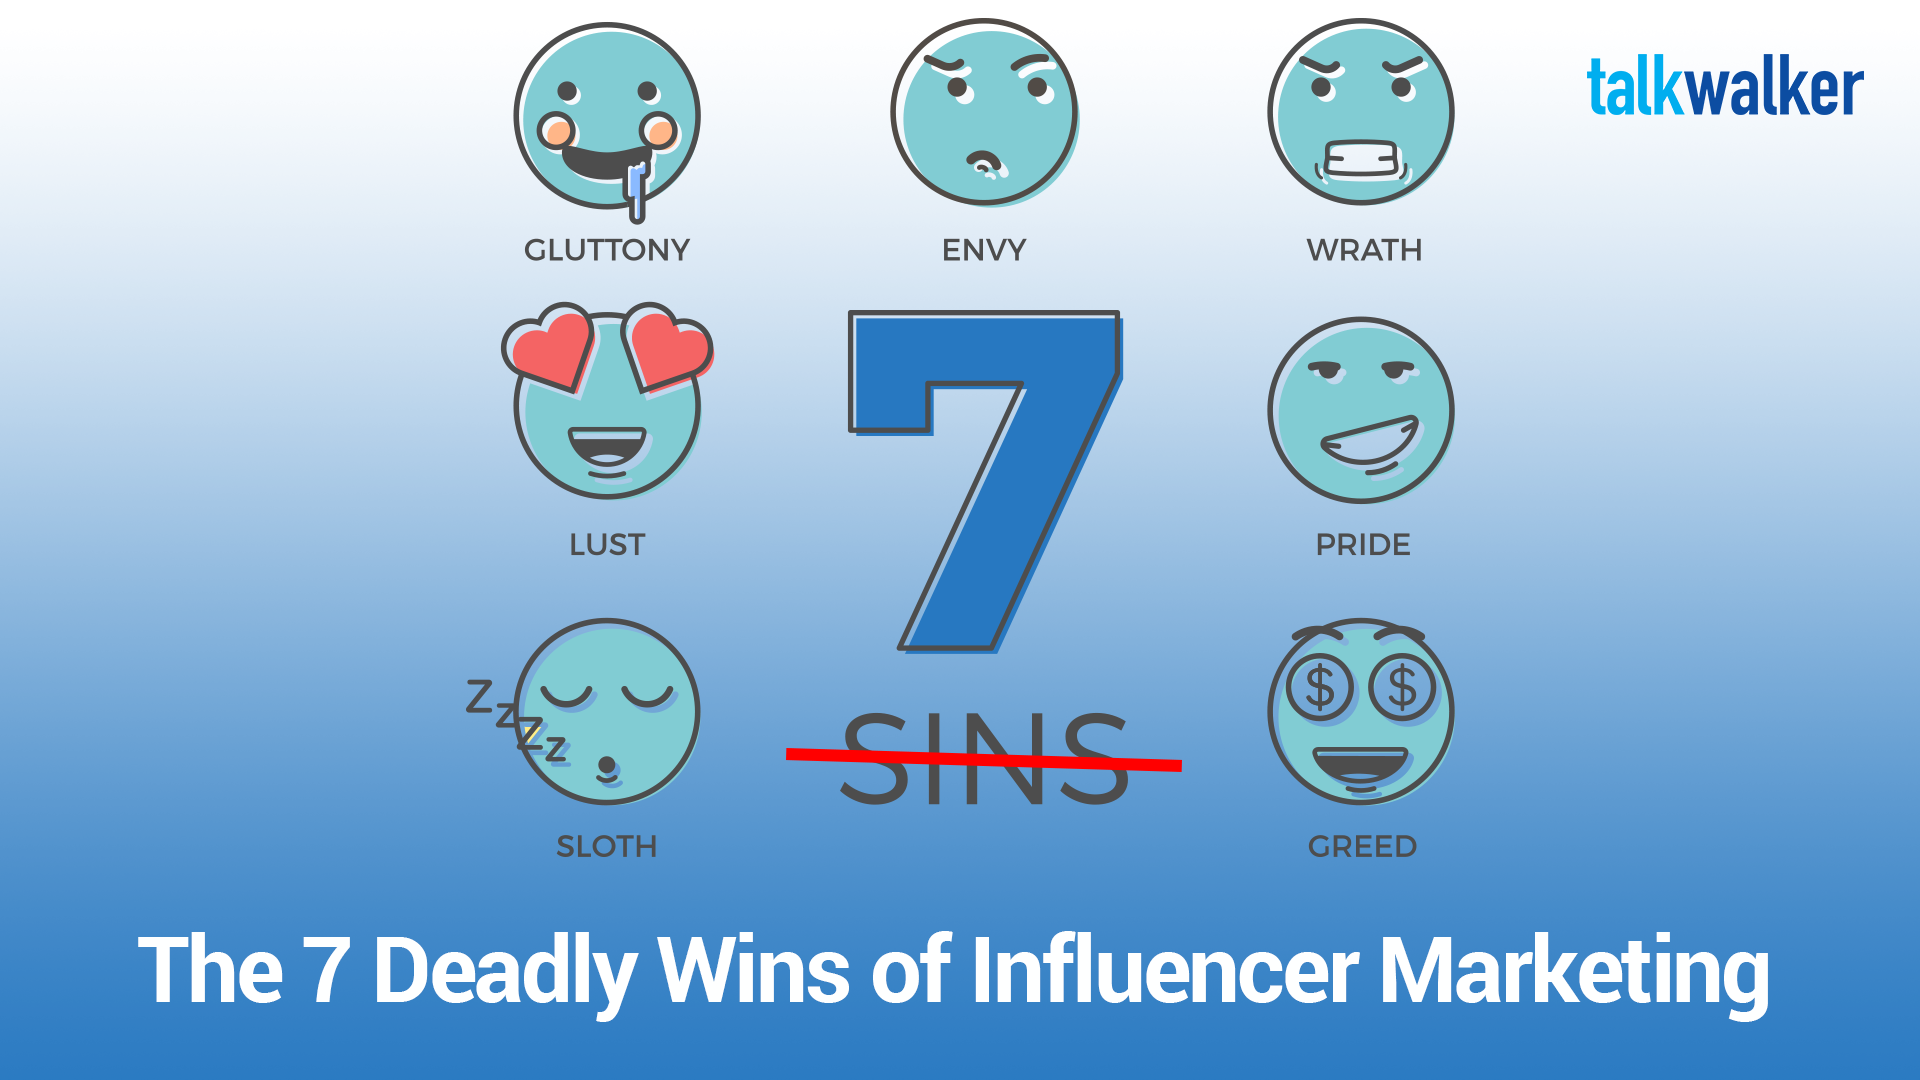 The 7 Deadly Wins of Influencer Marketing